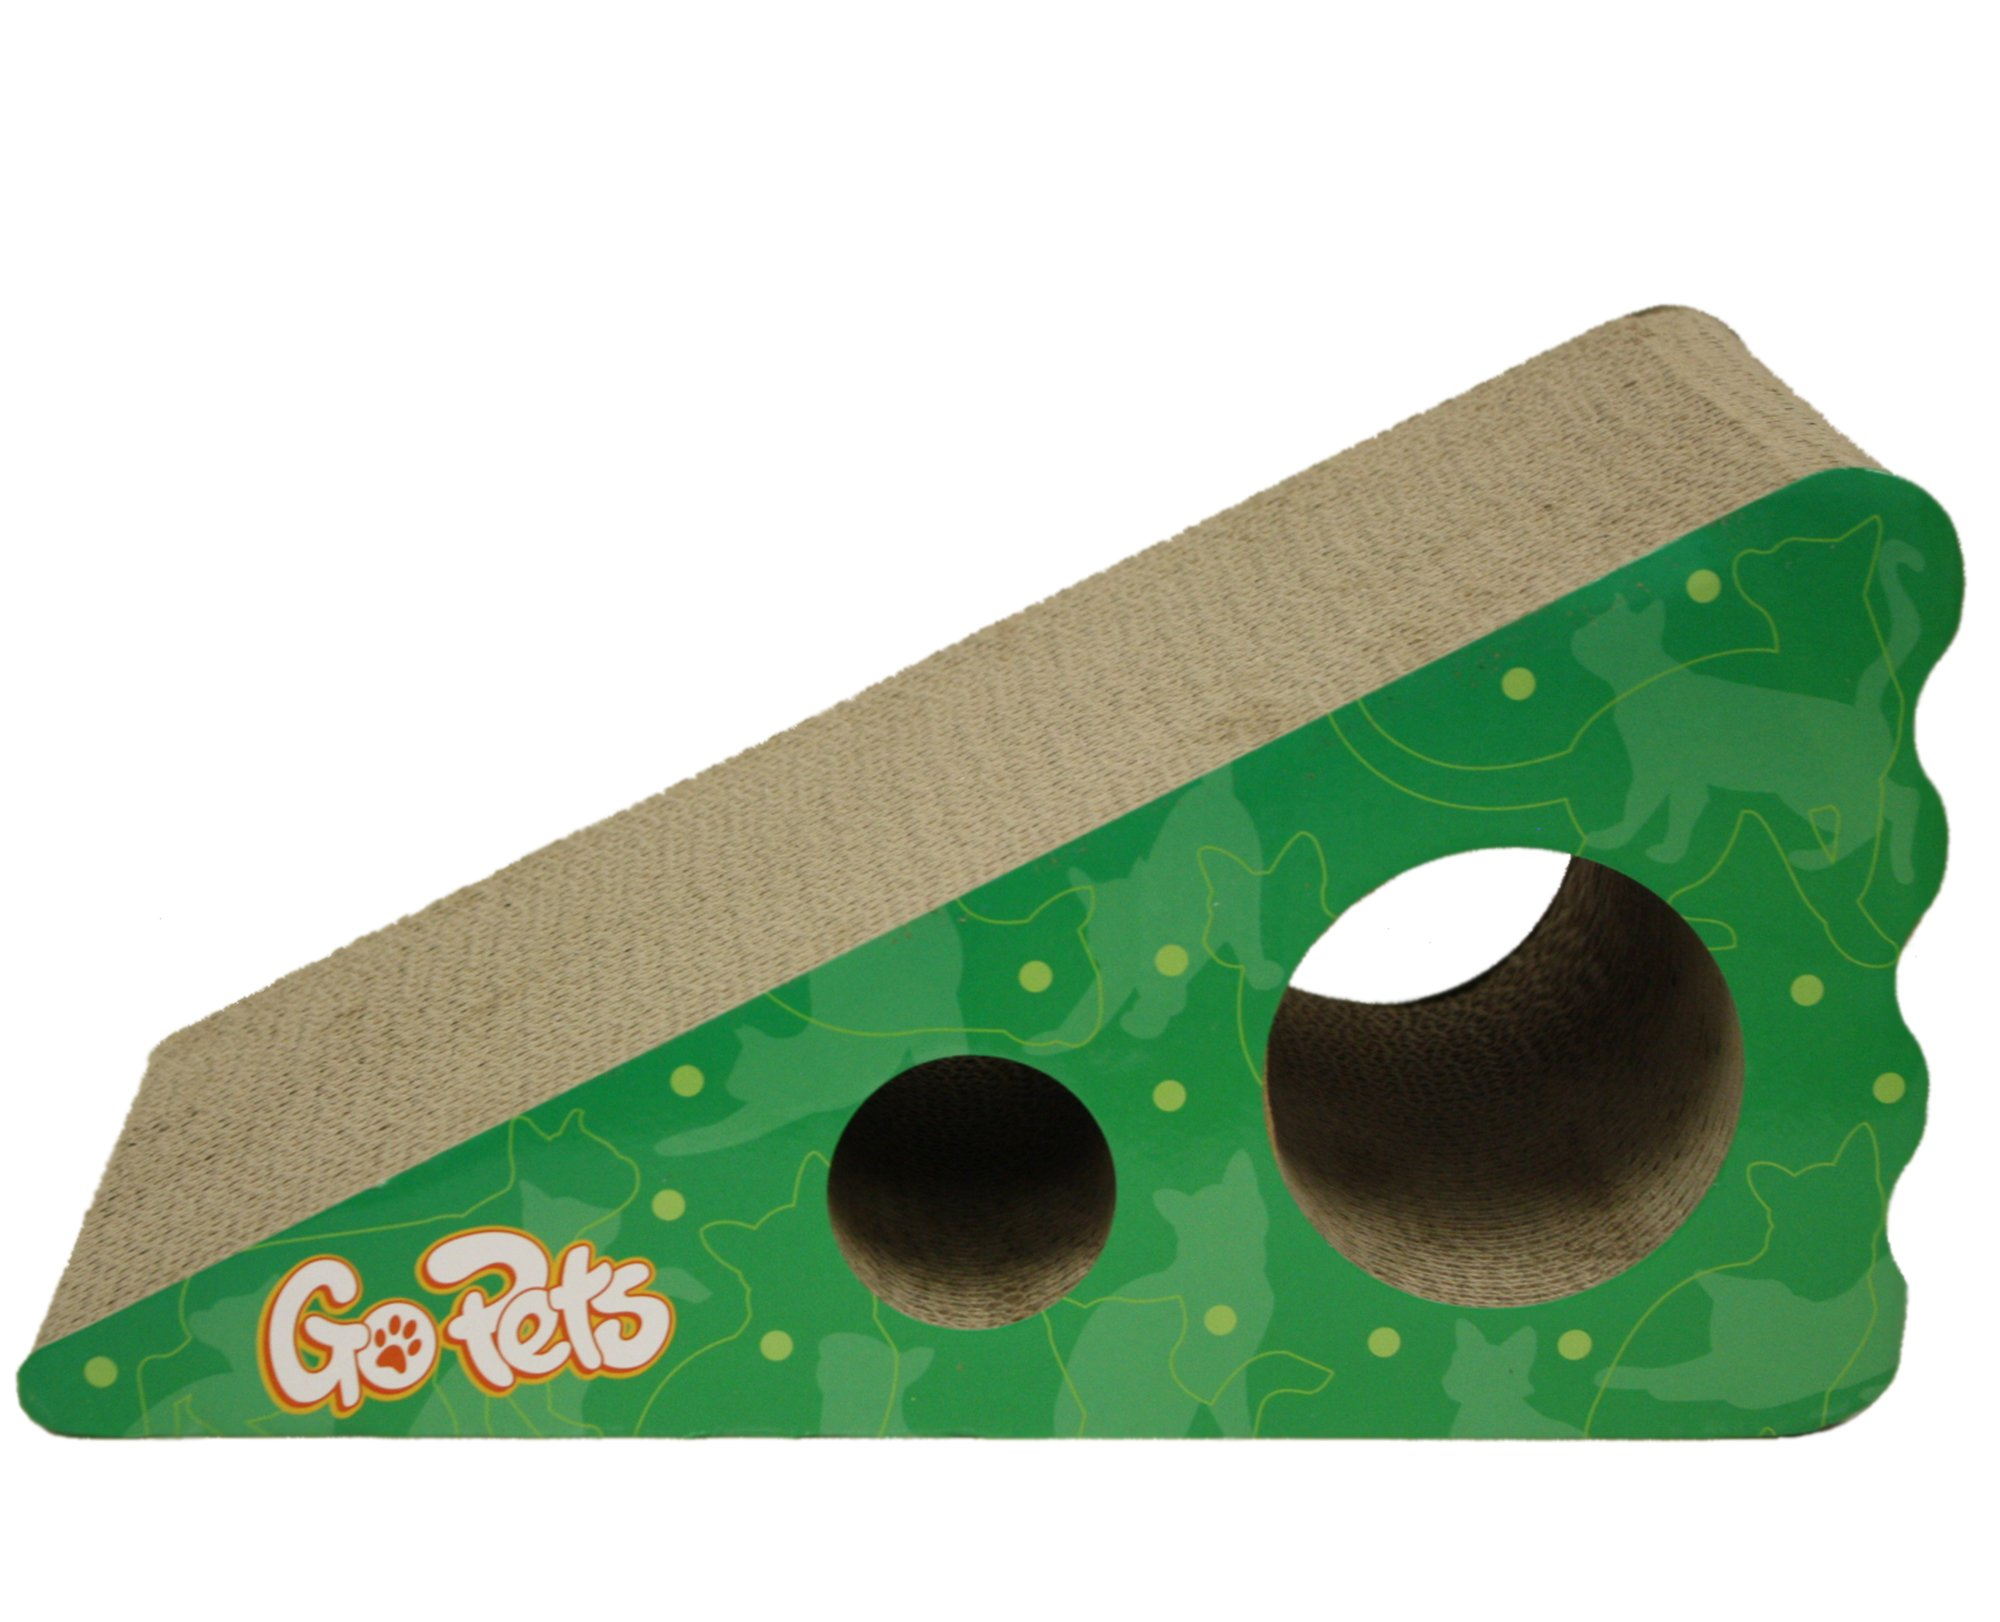 GoPets Premium Cat Scratcher, Wedge Shaped Corrugated Cardboard is Reversible Lasts 2X Longer Includes 1 Pack Catnip, Natural Incline More Ergonomic Than Scratching Post, Cutouts to Hide Toys by GoPets